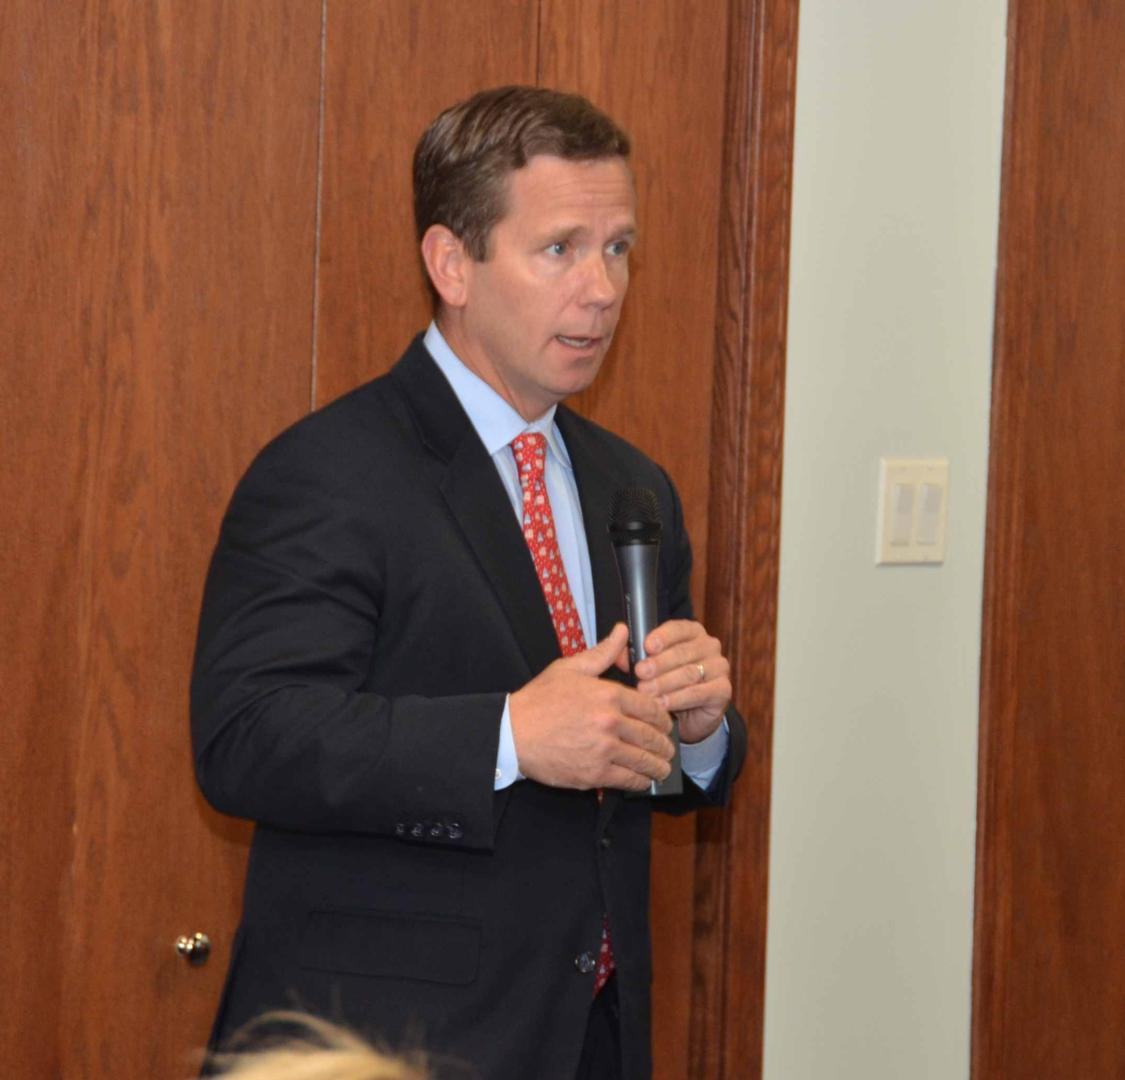 Rep. Robert  Dold and Disability Advisory Board Tour